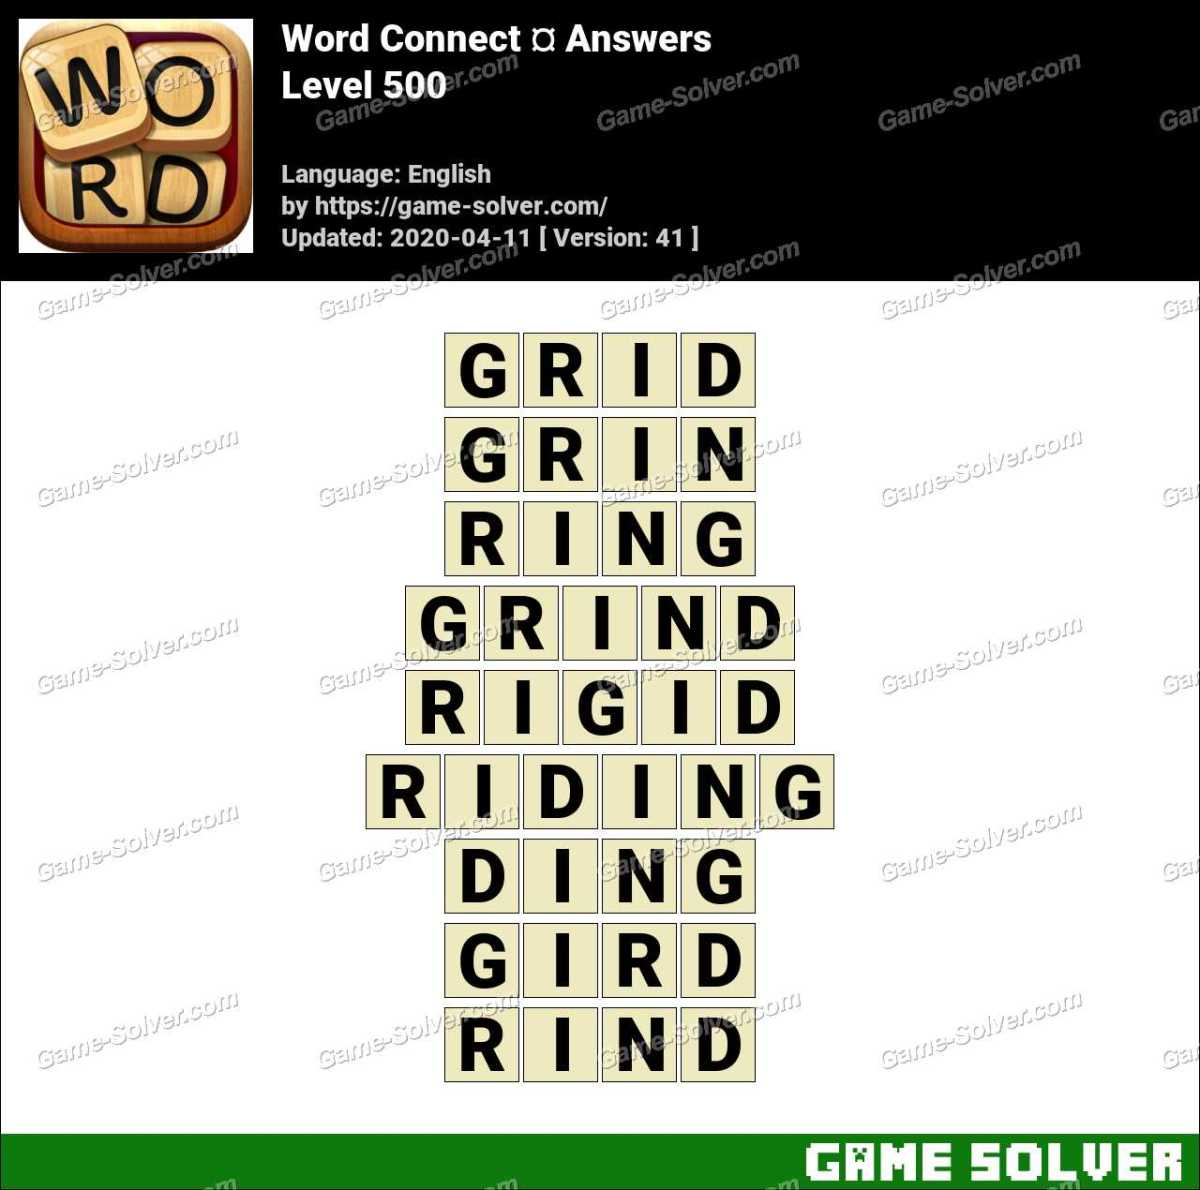 Word Connect Level 500 Answers